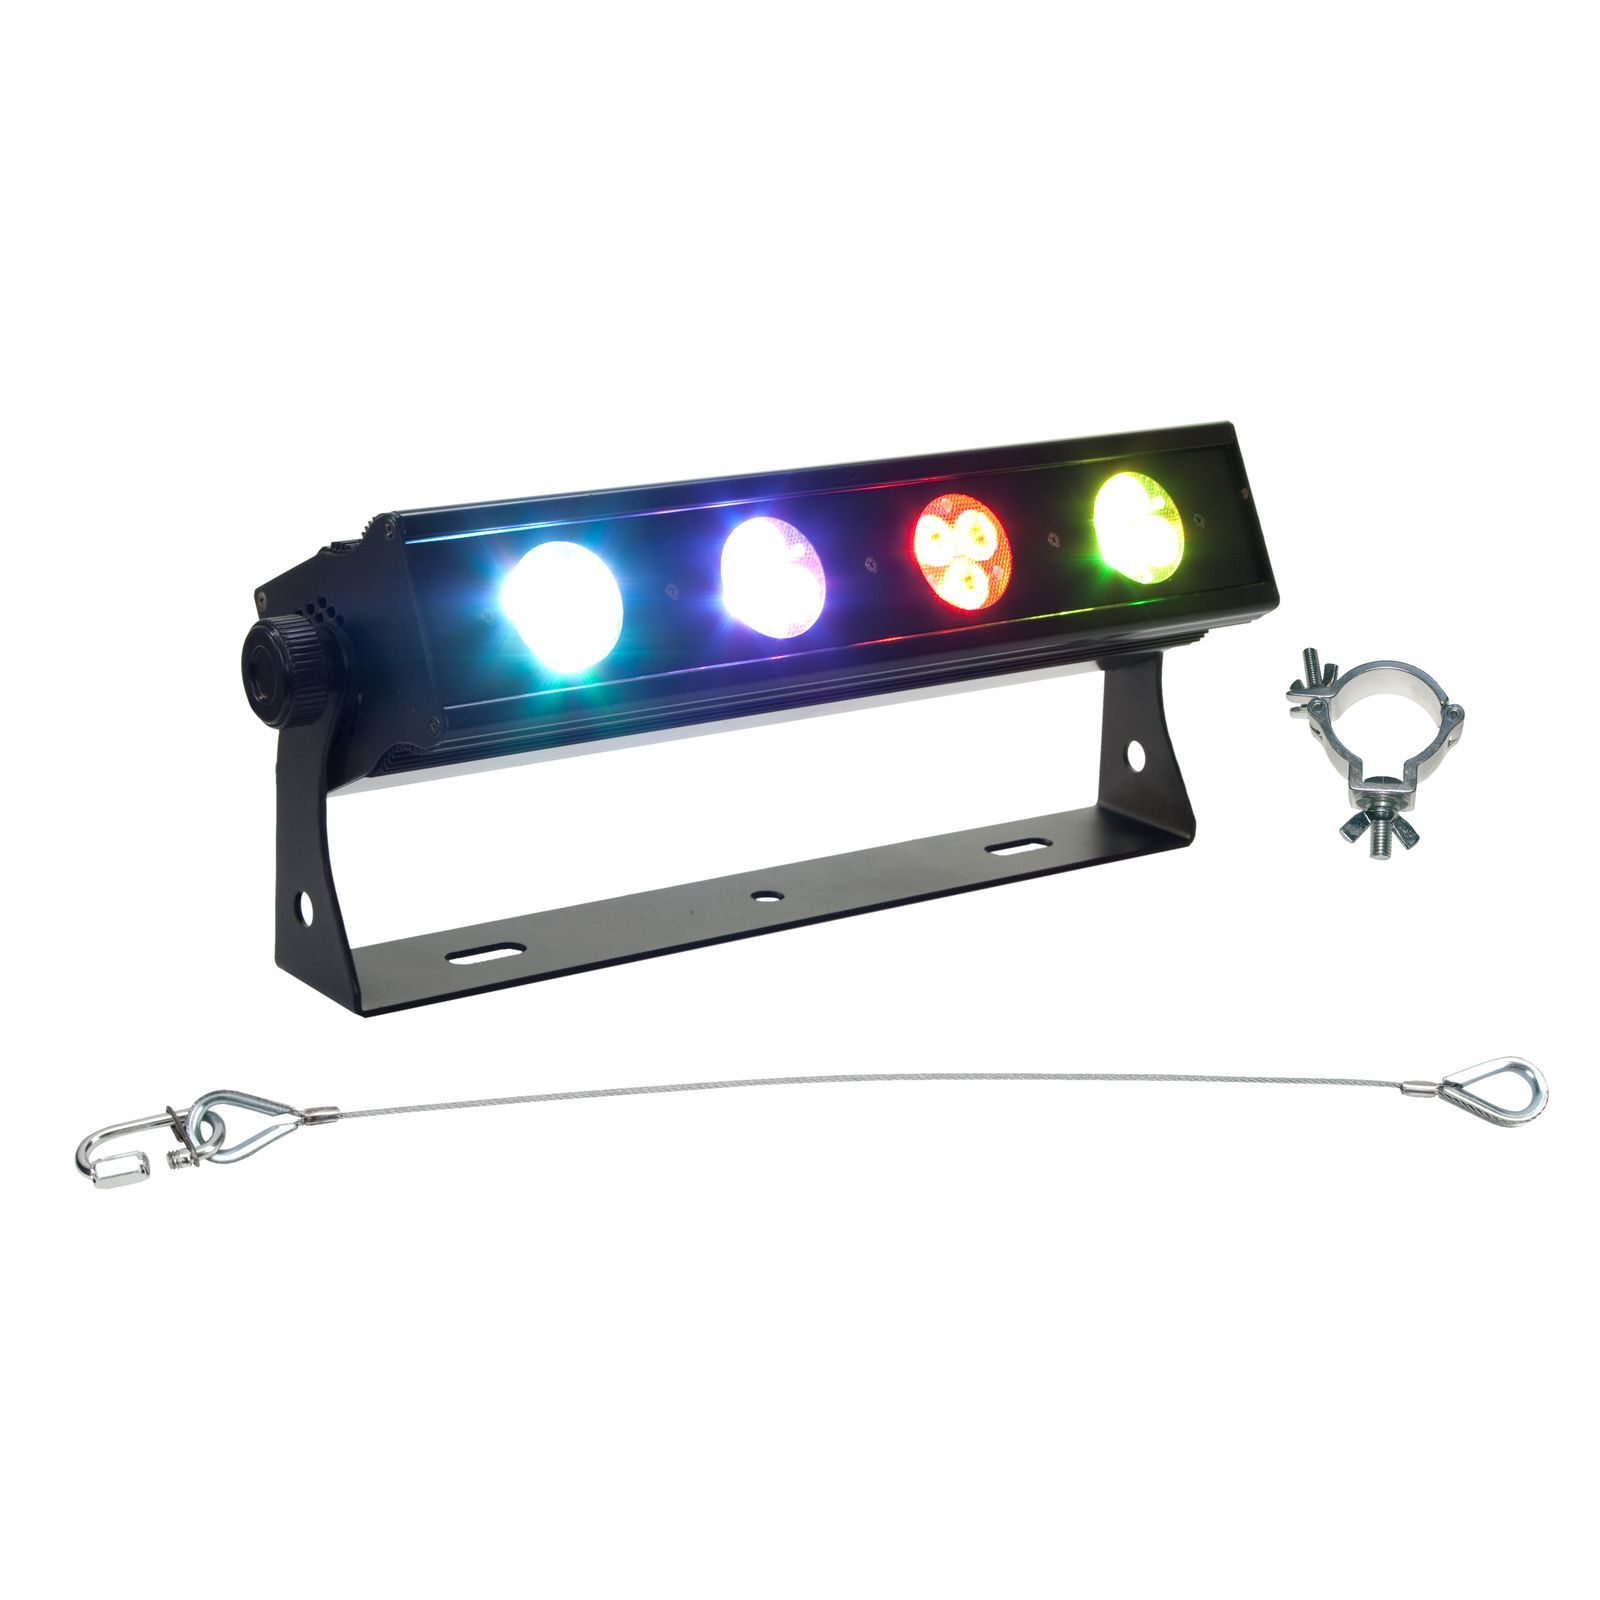 SET Platinum BAR TRI-LED short inkl. Coupler und Safety Produktbillede